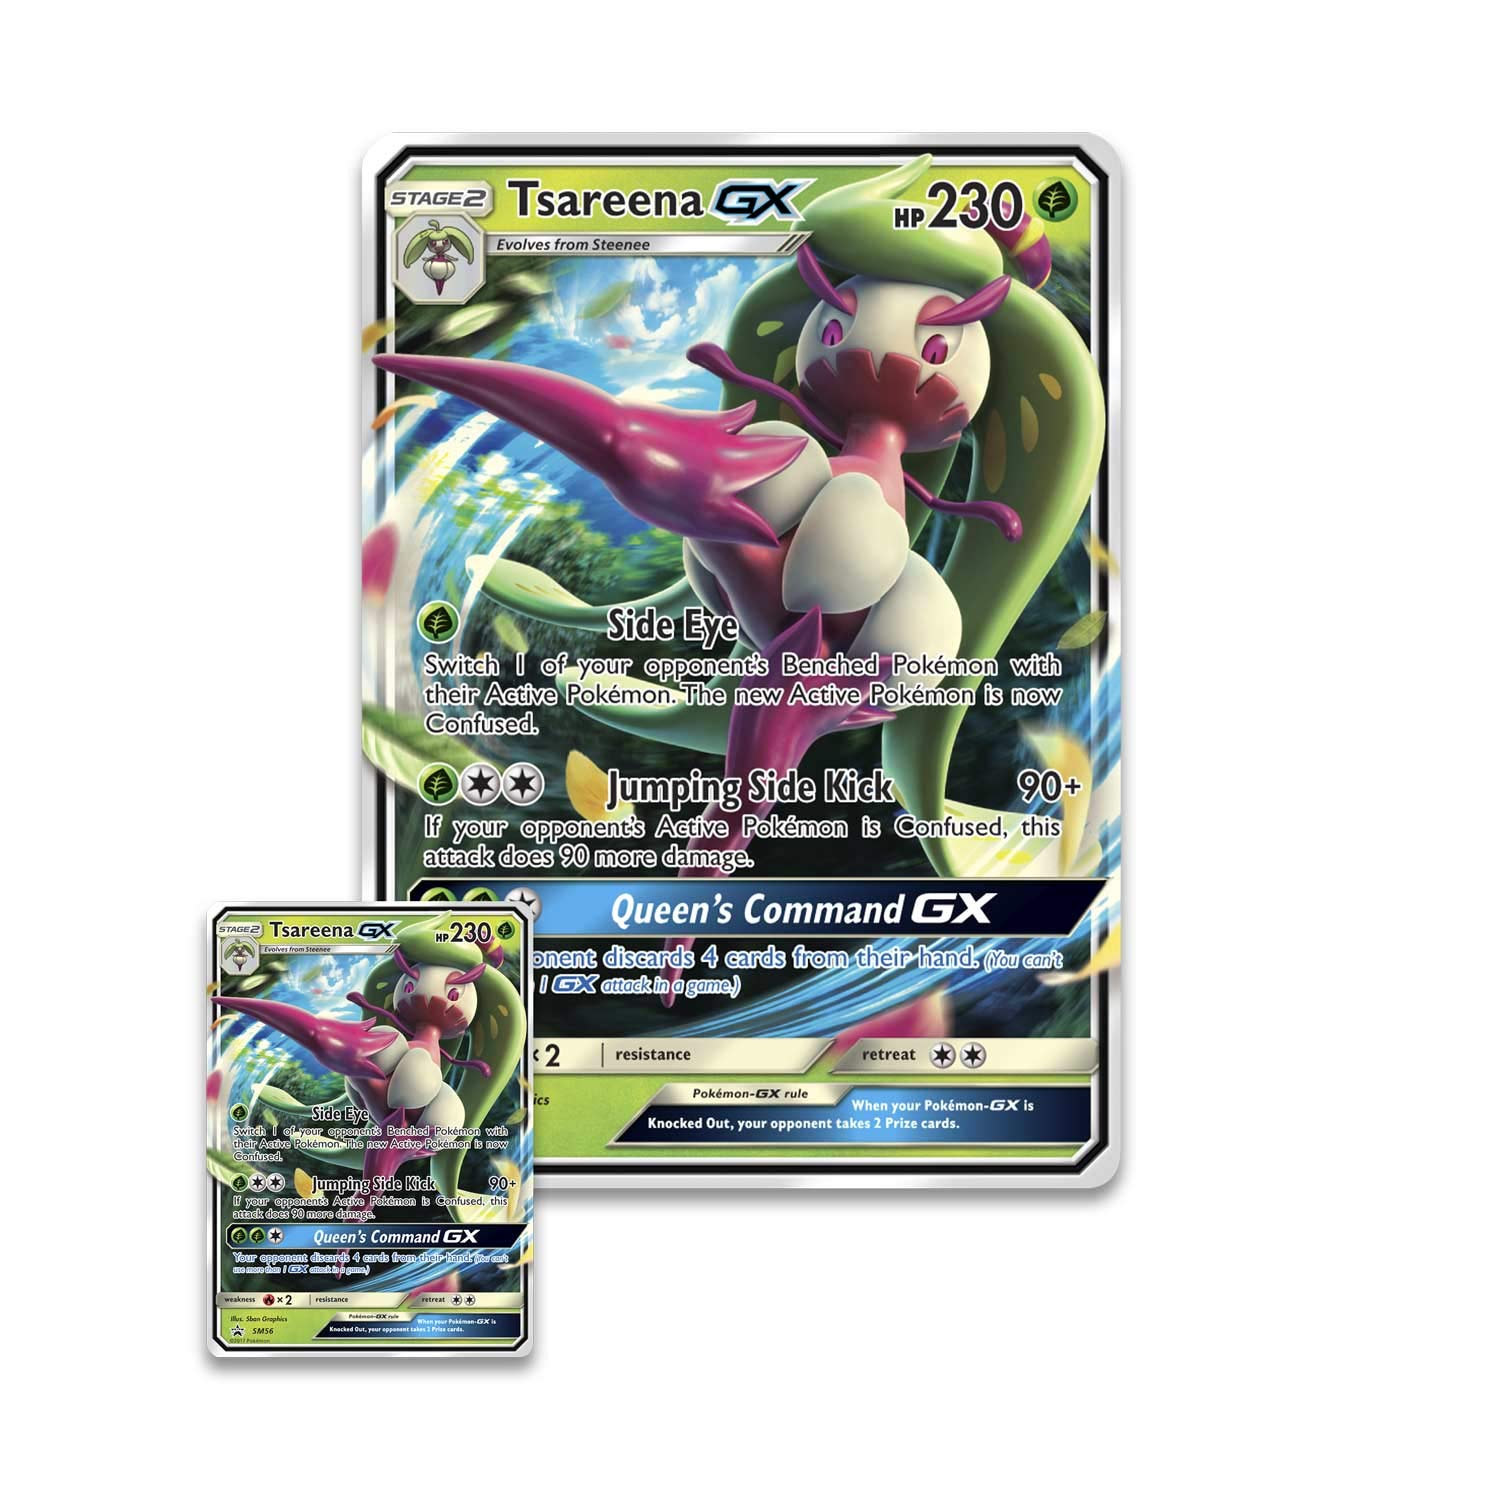 TCG: Tsareena-Gx Box - 4 Booster Pack with A Foil Promo Card & 1 Foil Oversize Card